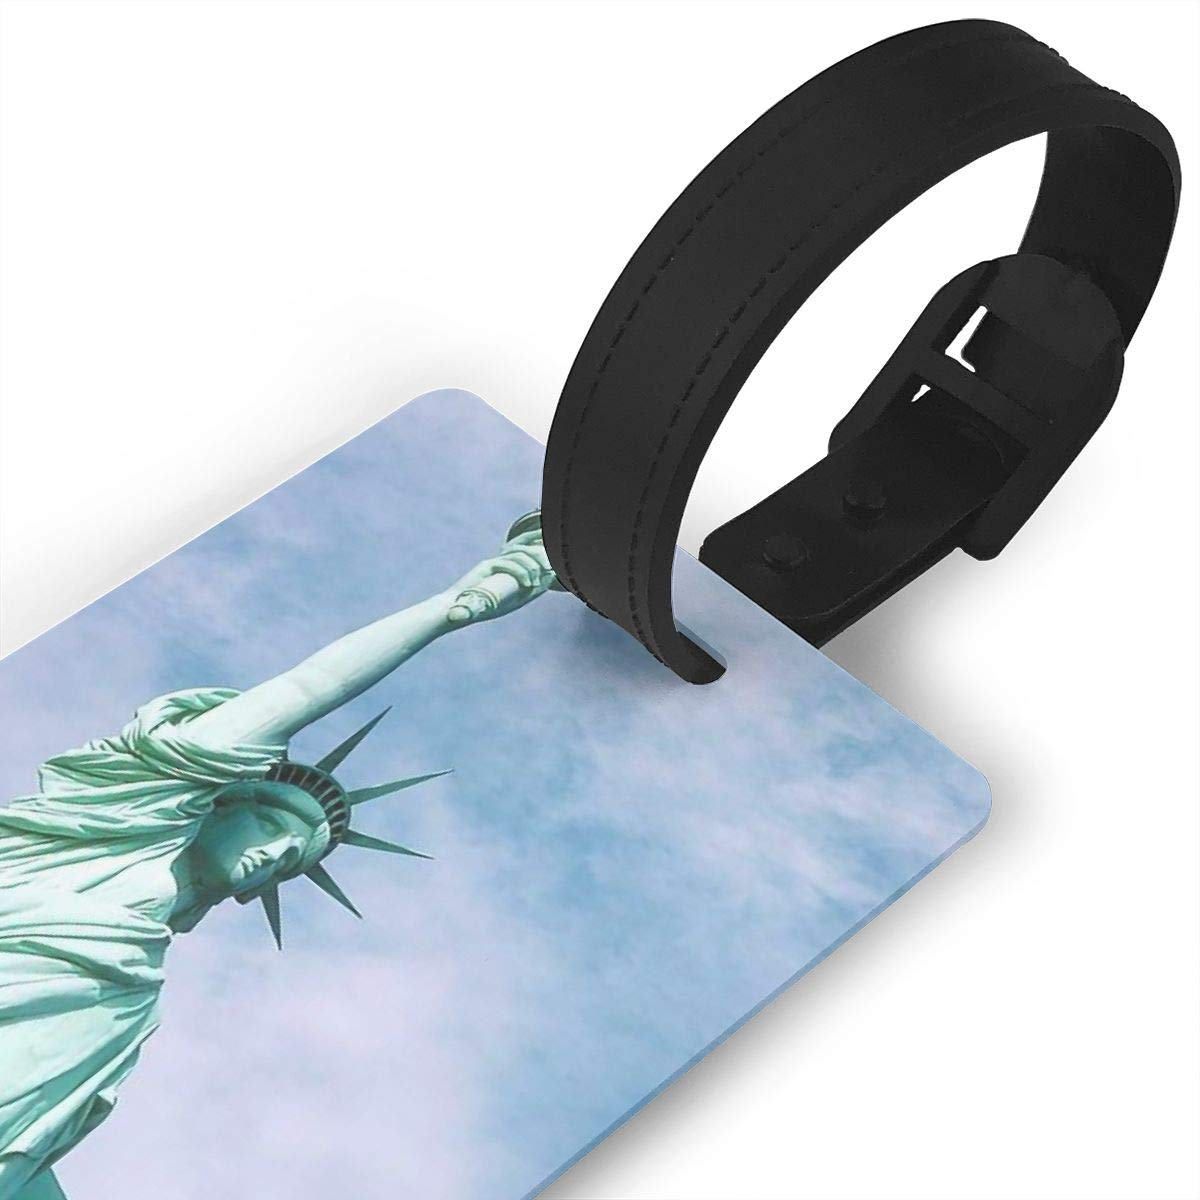 Statue Of Liberty Cruise Luggage Tag For Travel Bag Suitcase Accessories 2 Pack Luggage Tags